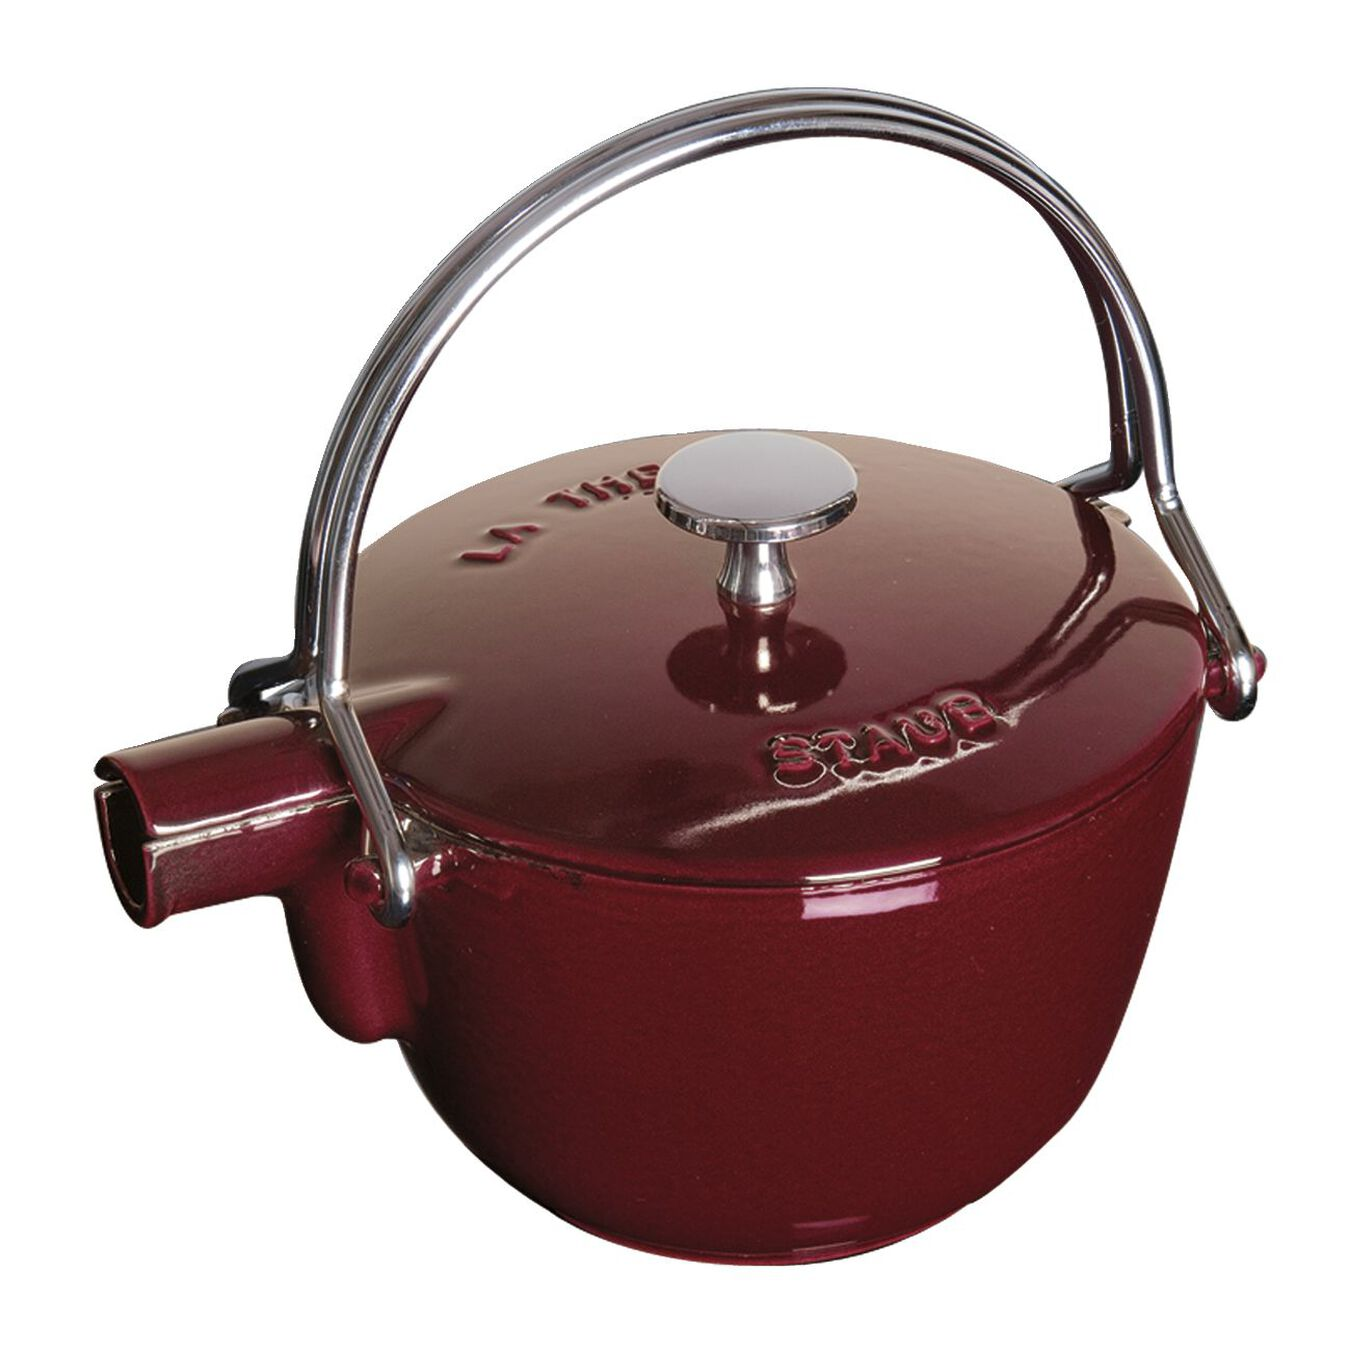 1-qt Round Tea Kettle - Grenadine,,large 4